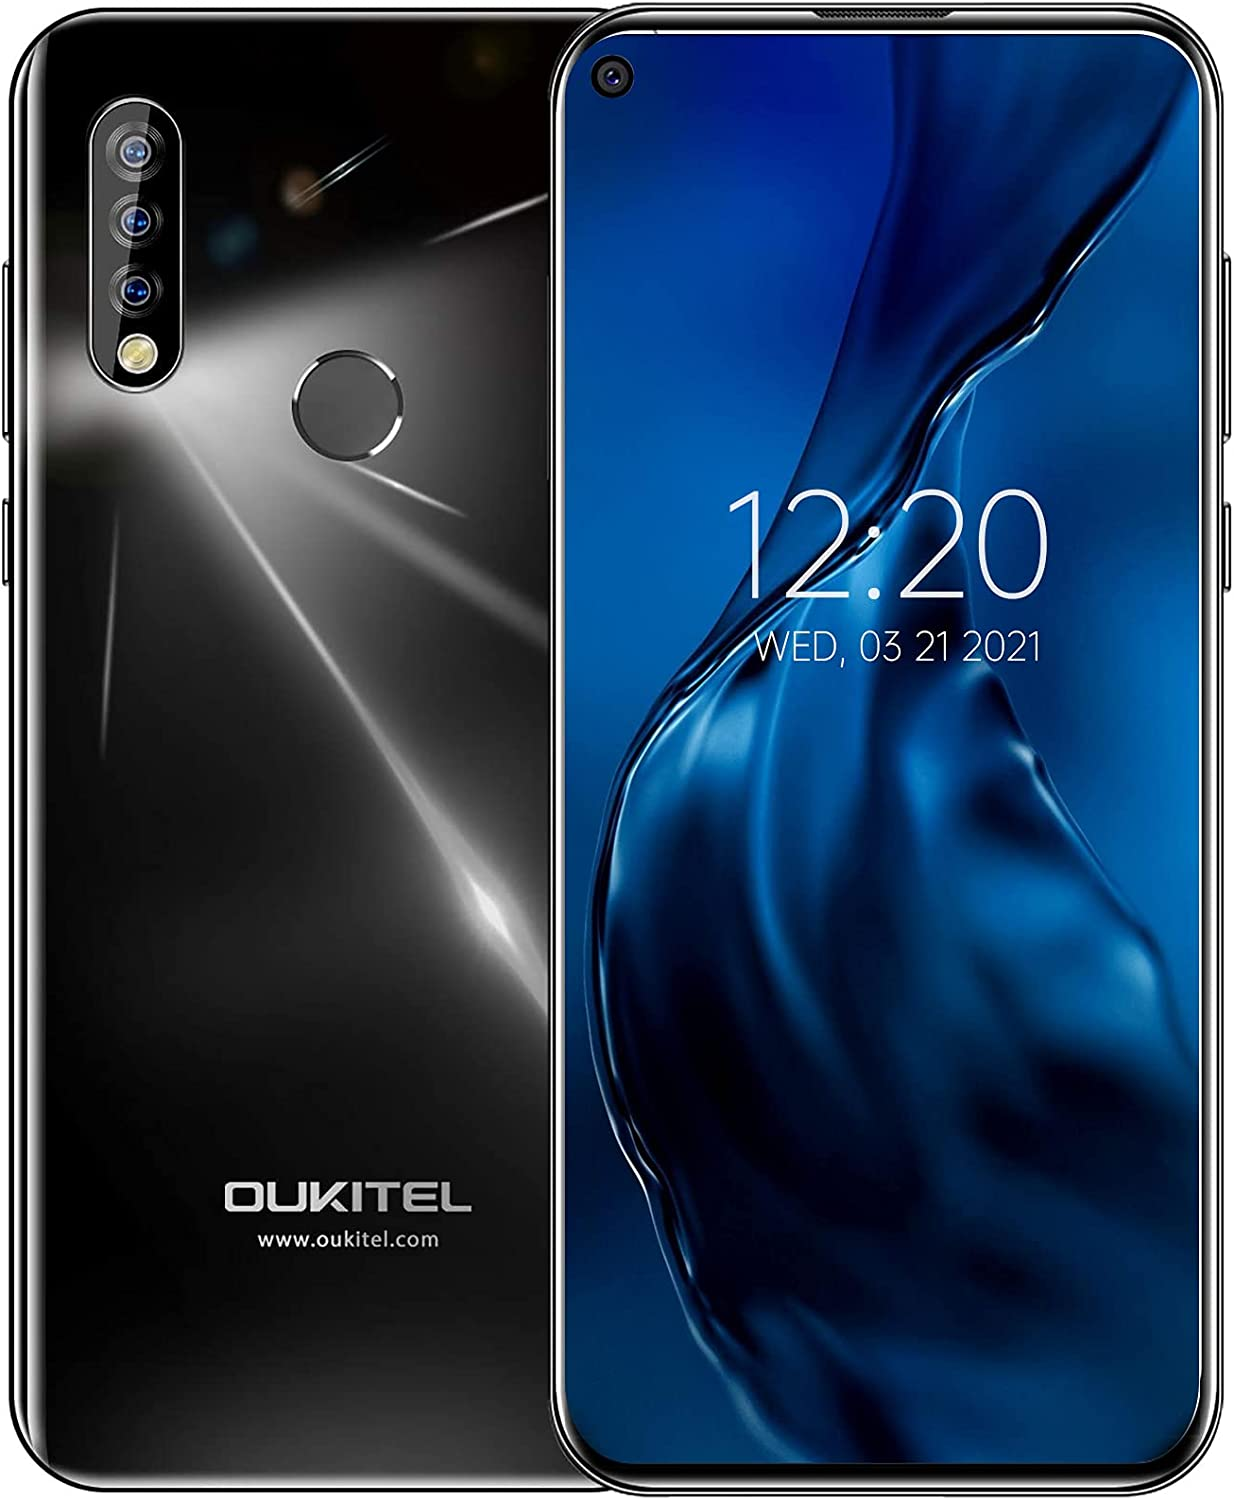 Unlocked Cell Phone,OUKITEL C17 Pro 6.35 inch Android Smartphone,2021 4G Dual SIM T-Mobile, AT&T,Metro PCS Phones,64GB ROM+4GB RAM 3 Cameras,Unlock Smartphones US Version,Volte,GPS,Bluetooth(Black)